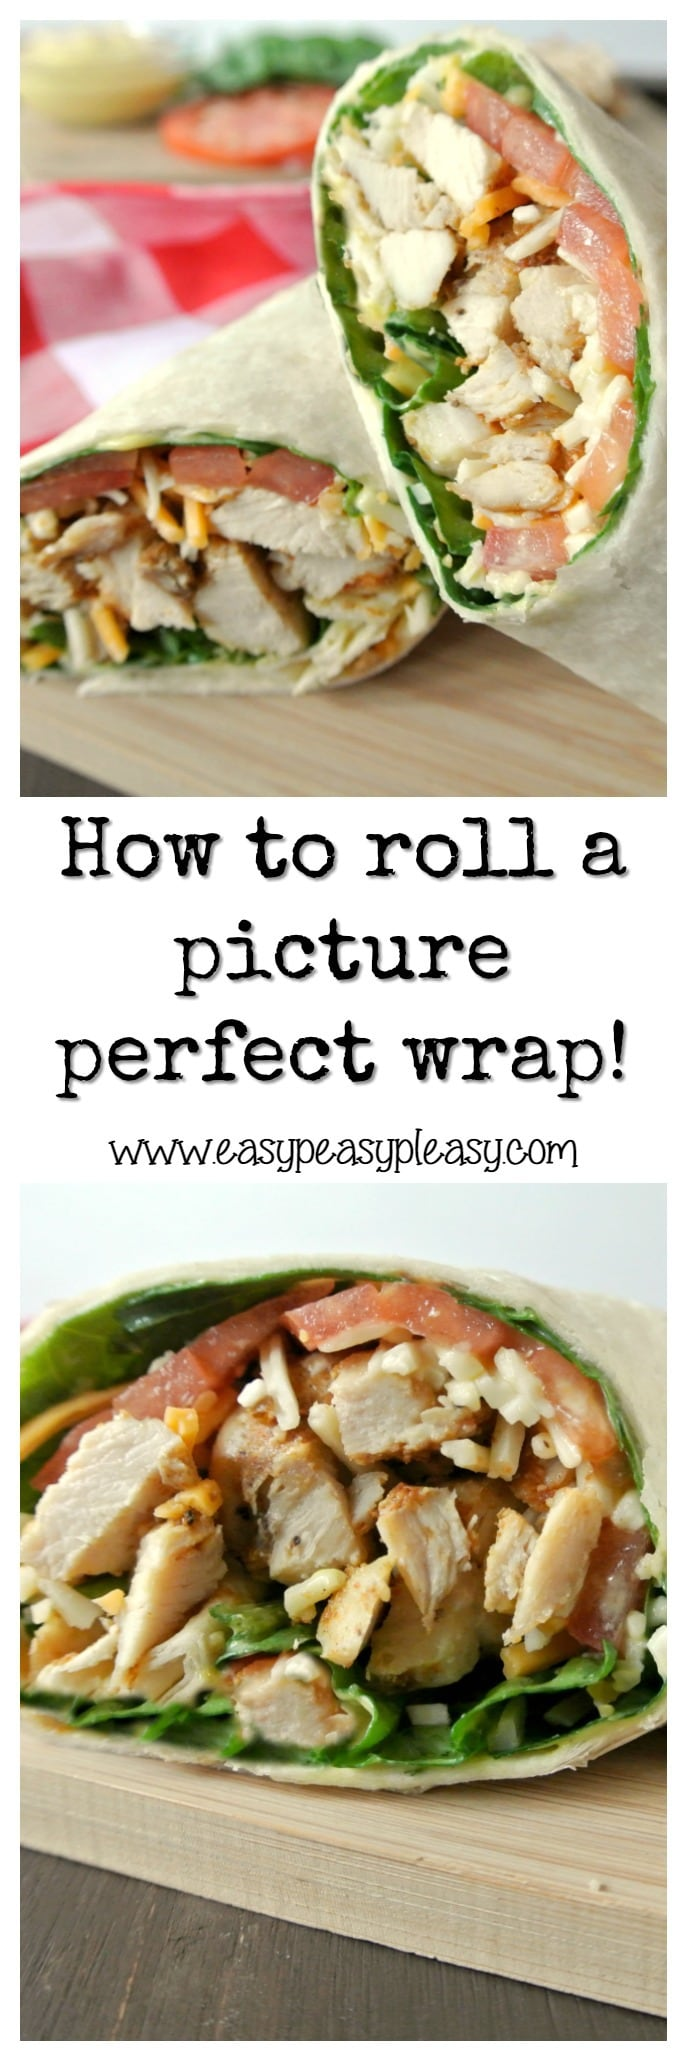 How to roll a picture perfect wrap plus recipe!